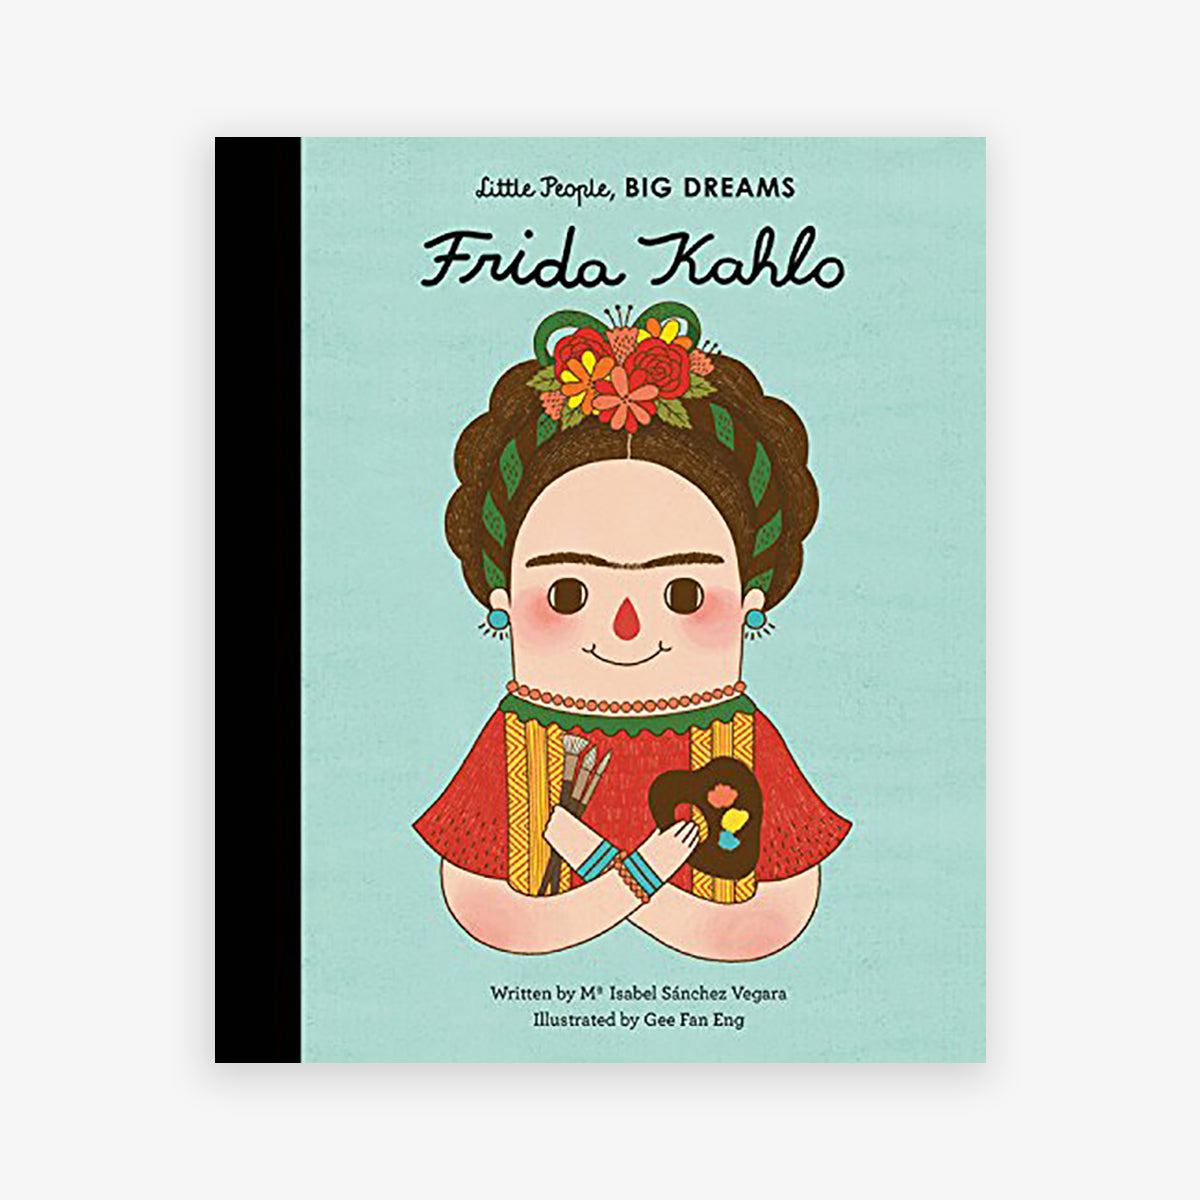 BOOK 'LITTLE PEOPLE, BIG DREAMS' // FRIDA KAHLO